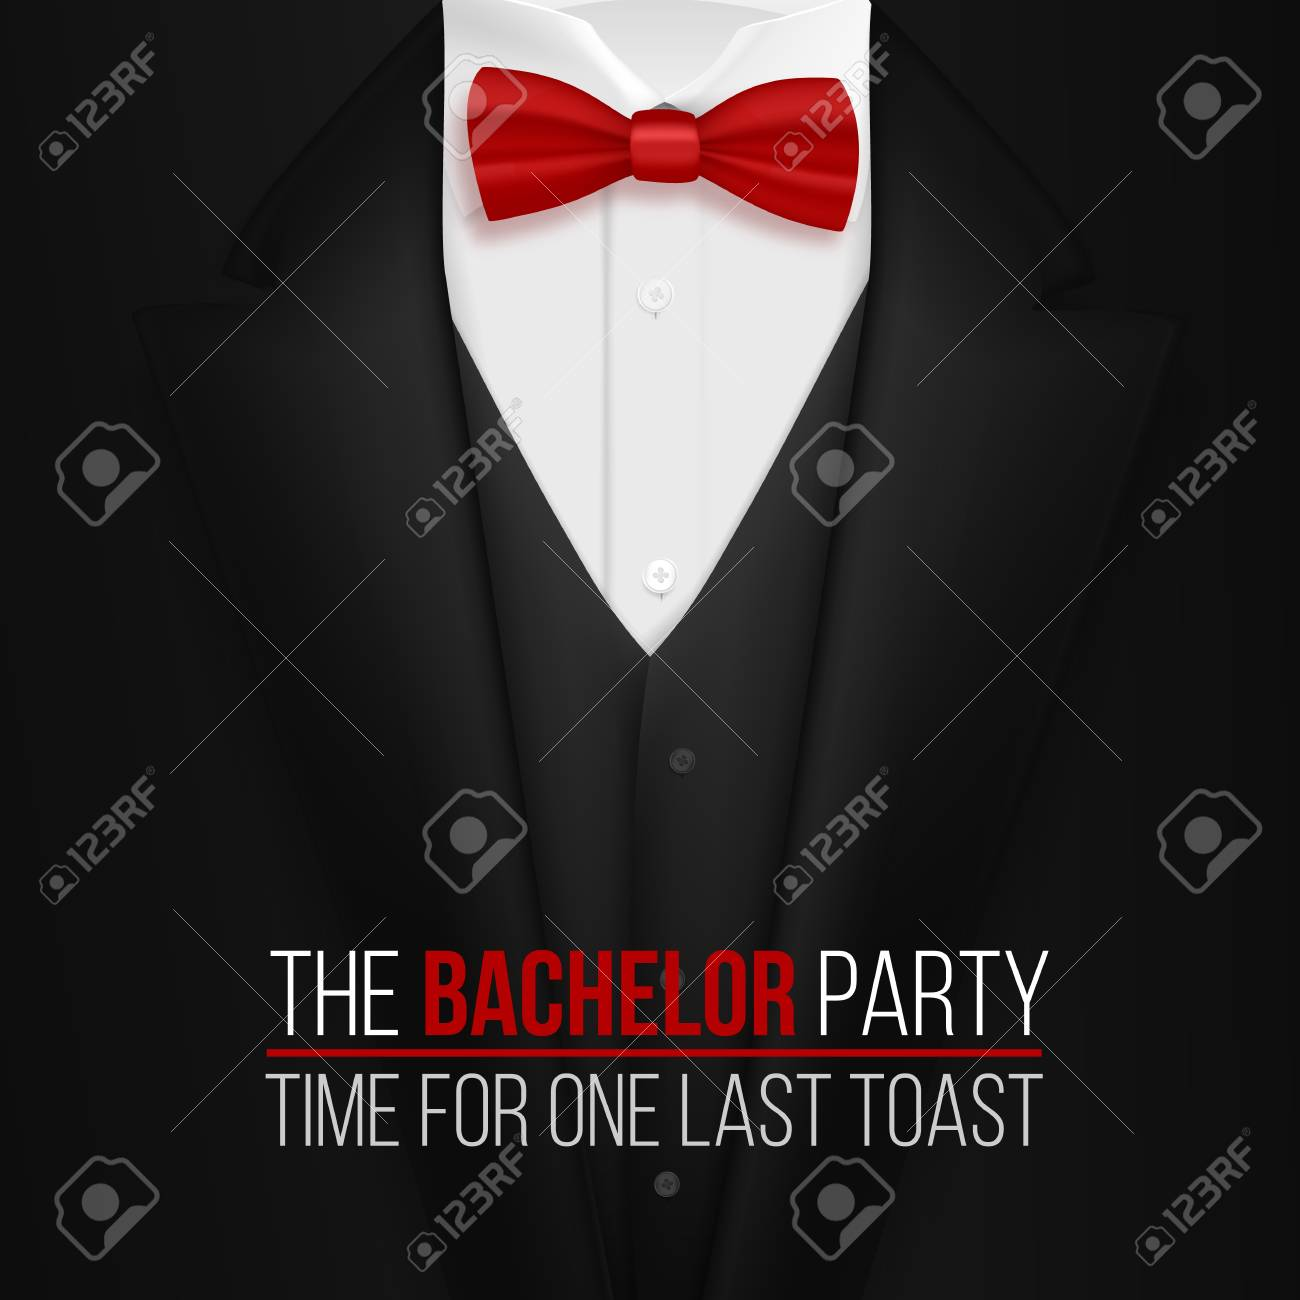 Illustration Of The Bachelor Party Invitation Template Realistic - Bachelor party invitation template